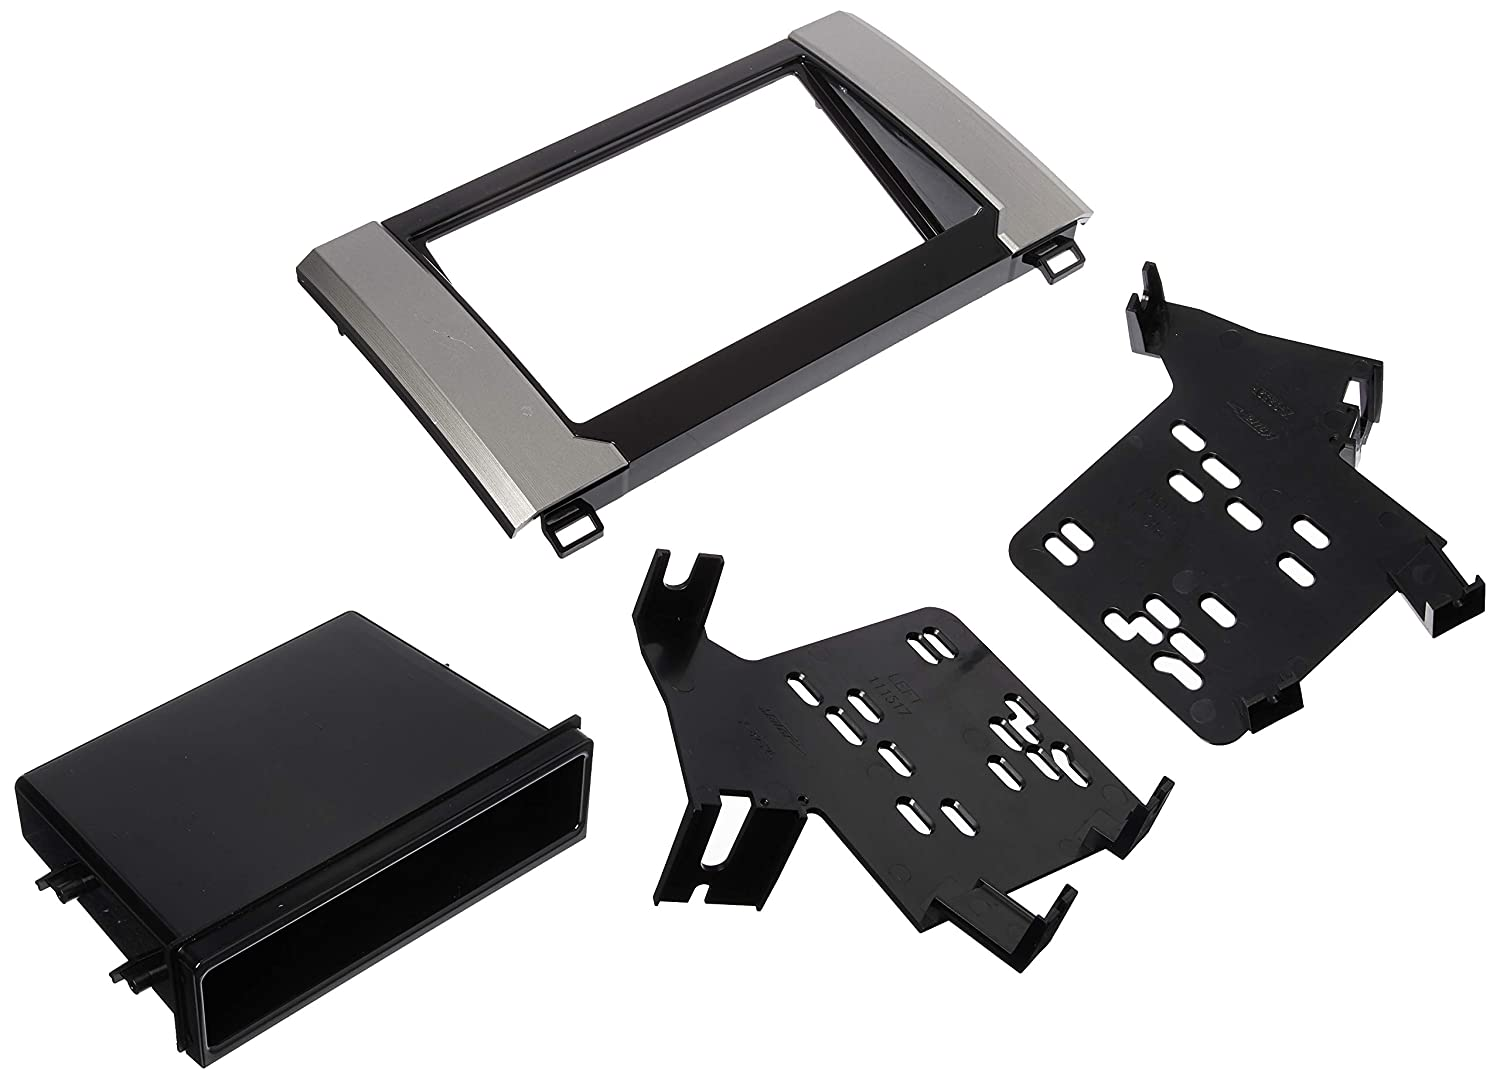 Metra Silver 99-8252 Mounting Kit for Toyota Tundra 2014 & Up